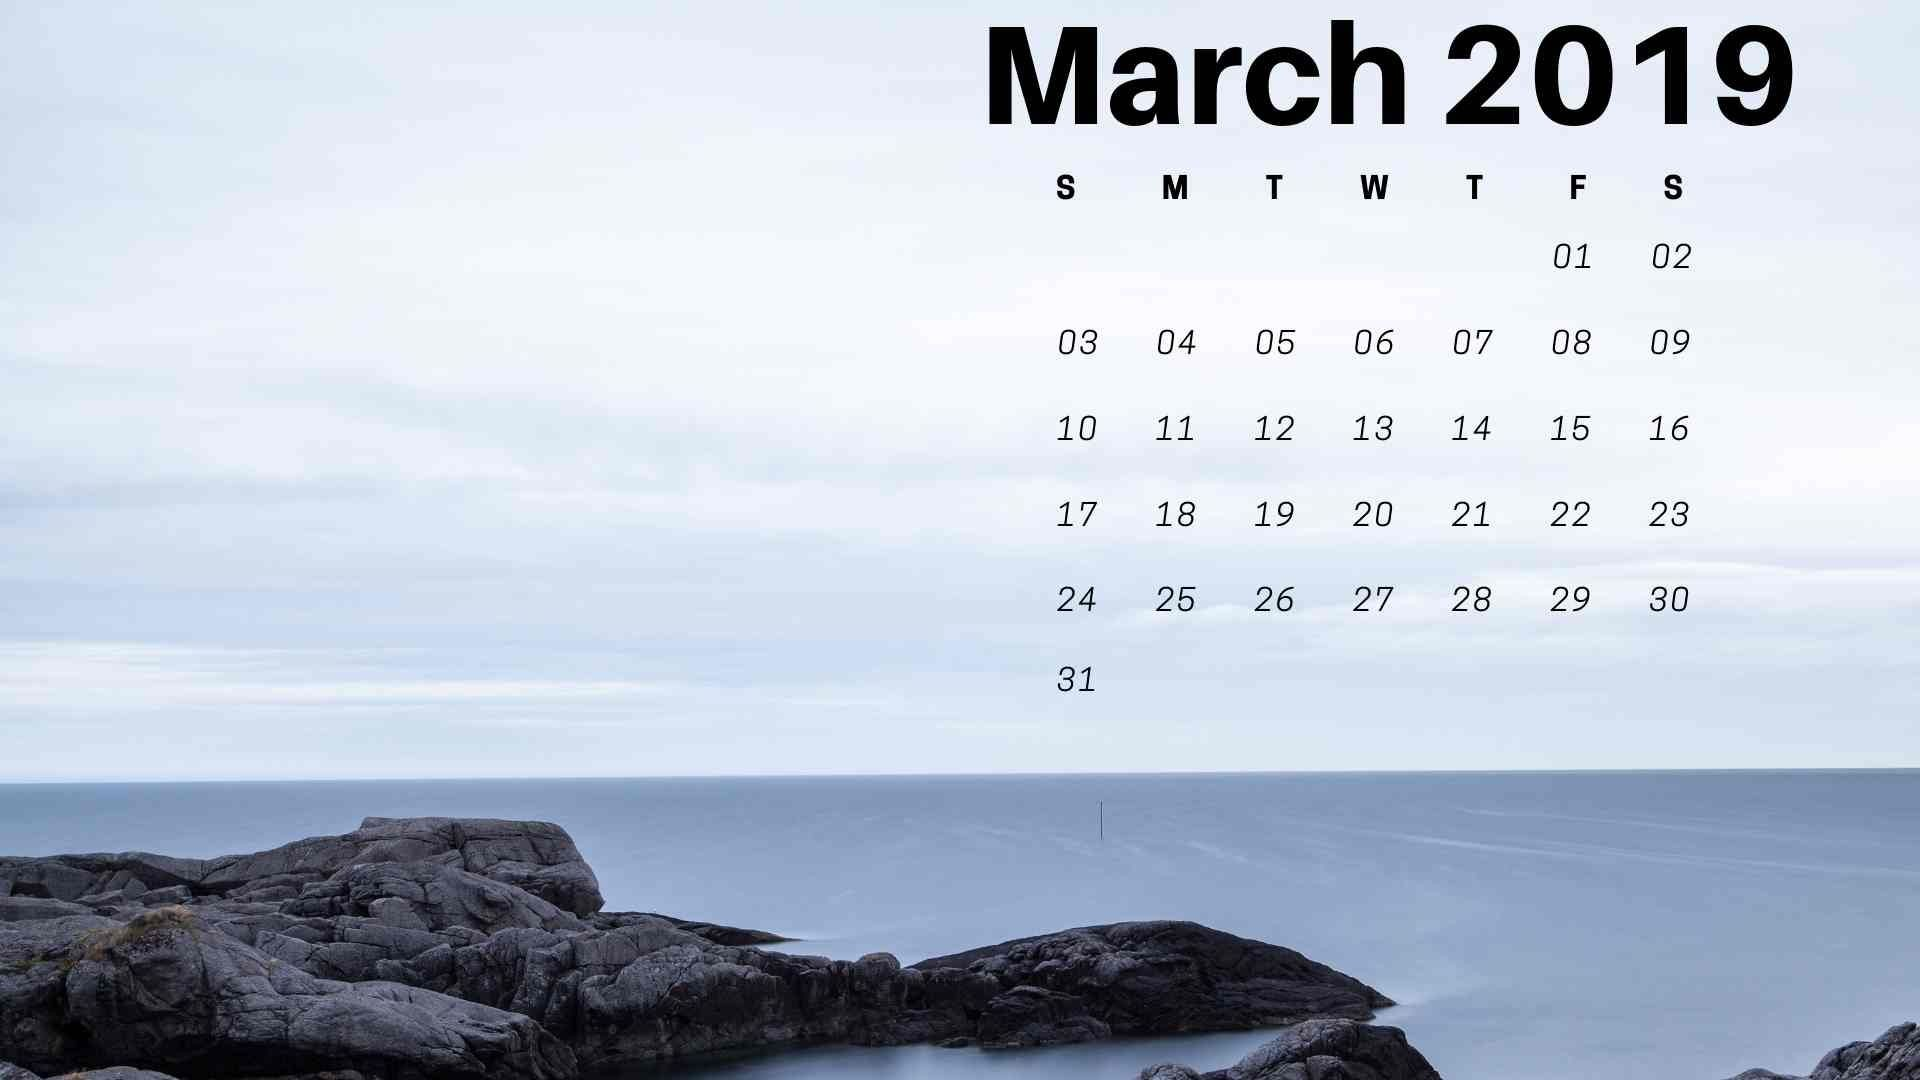 March Calendar Blank 2019 Más Recientes March 2019 Calendar Wallpaper Desktop March Calendar Calenda2019 Of March Calendar Blank 2019 Más Caliente 2019 March for Life Info